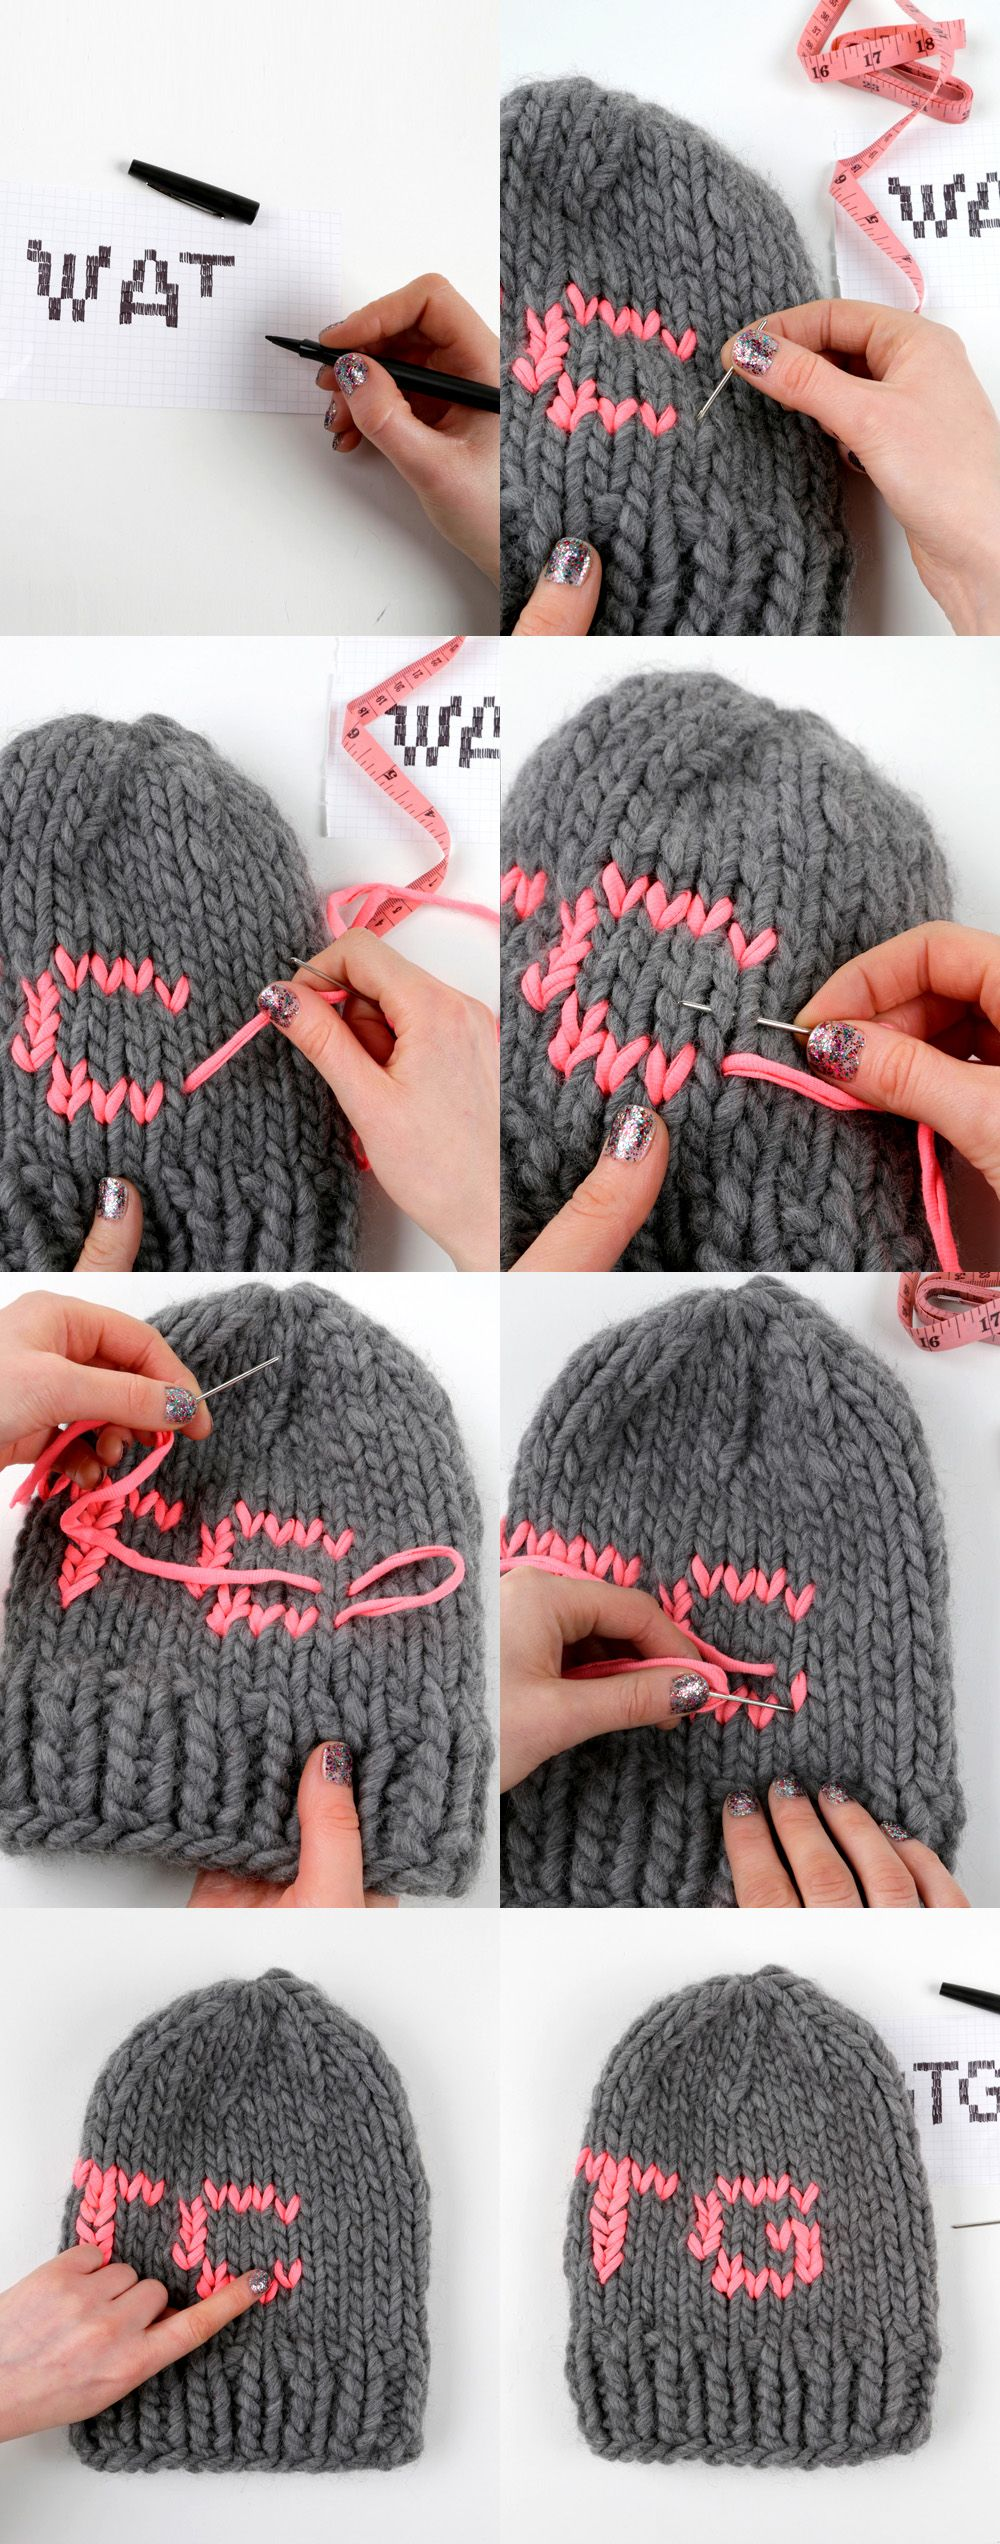 How To Do The Duplicate Stitch In A Few Simple Steps Woolandthegang